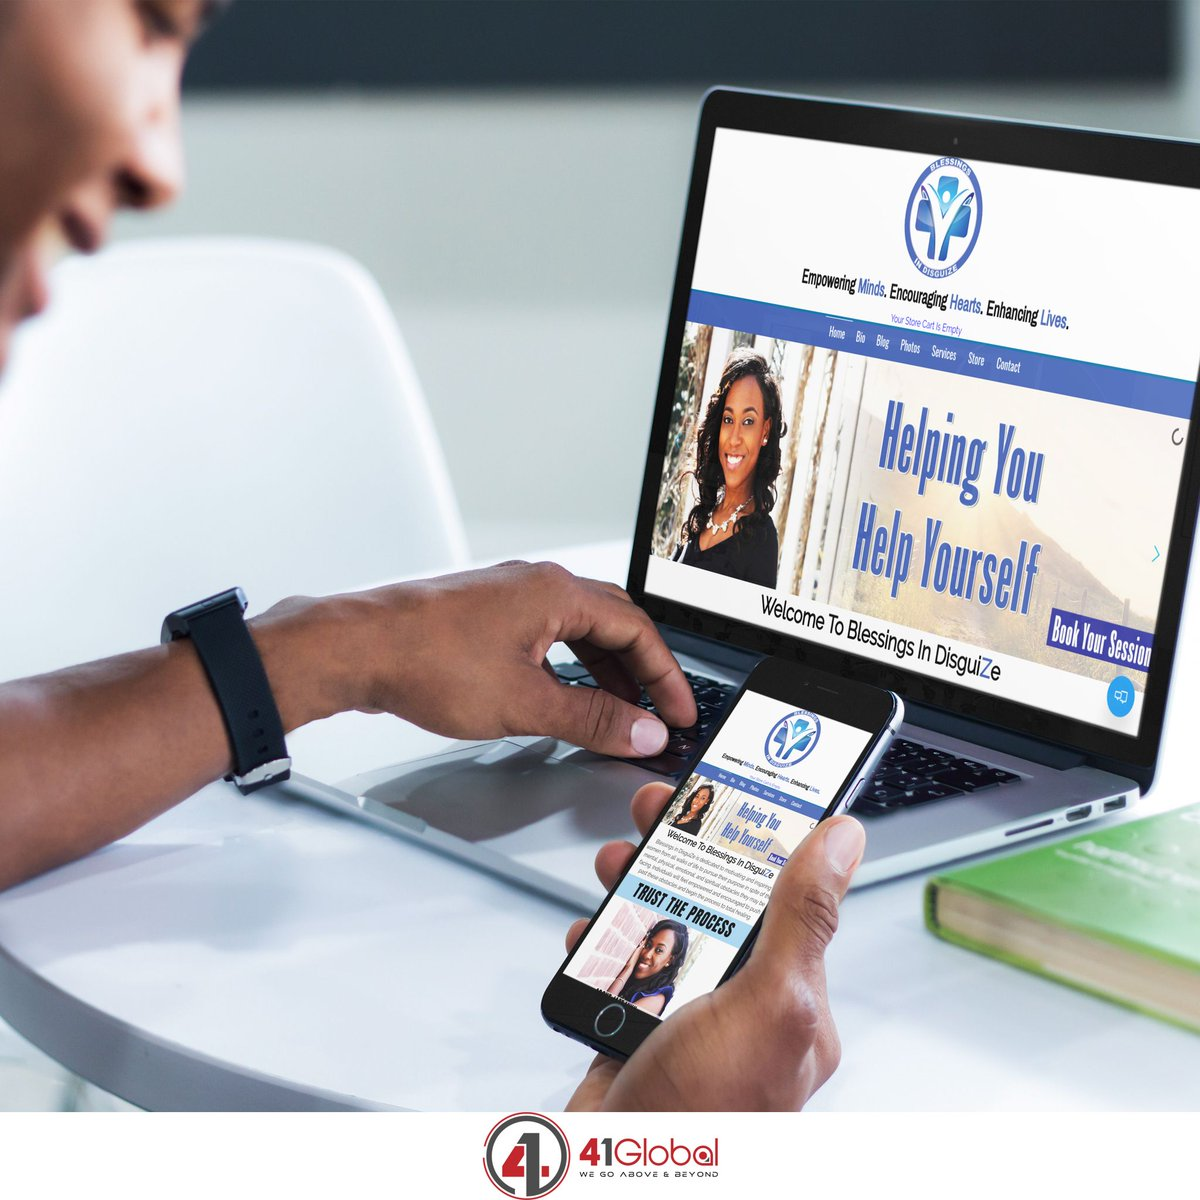 New website redesign project!  Looking forward to seeing @J_lynn_a business continue to grow.  Go check her out at http://buff.ly/2PjsKq3  or if you are looking for a great speaker for your event, look no further! #41Global #website #webdevelopment #atlanta #BlessingsInDisguiZe